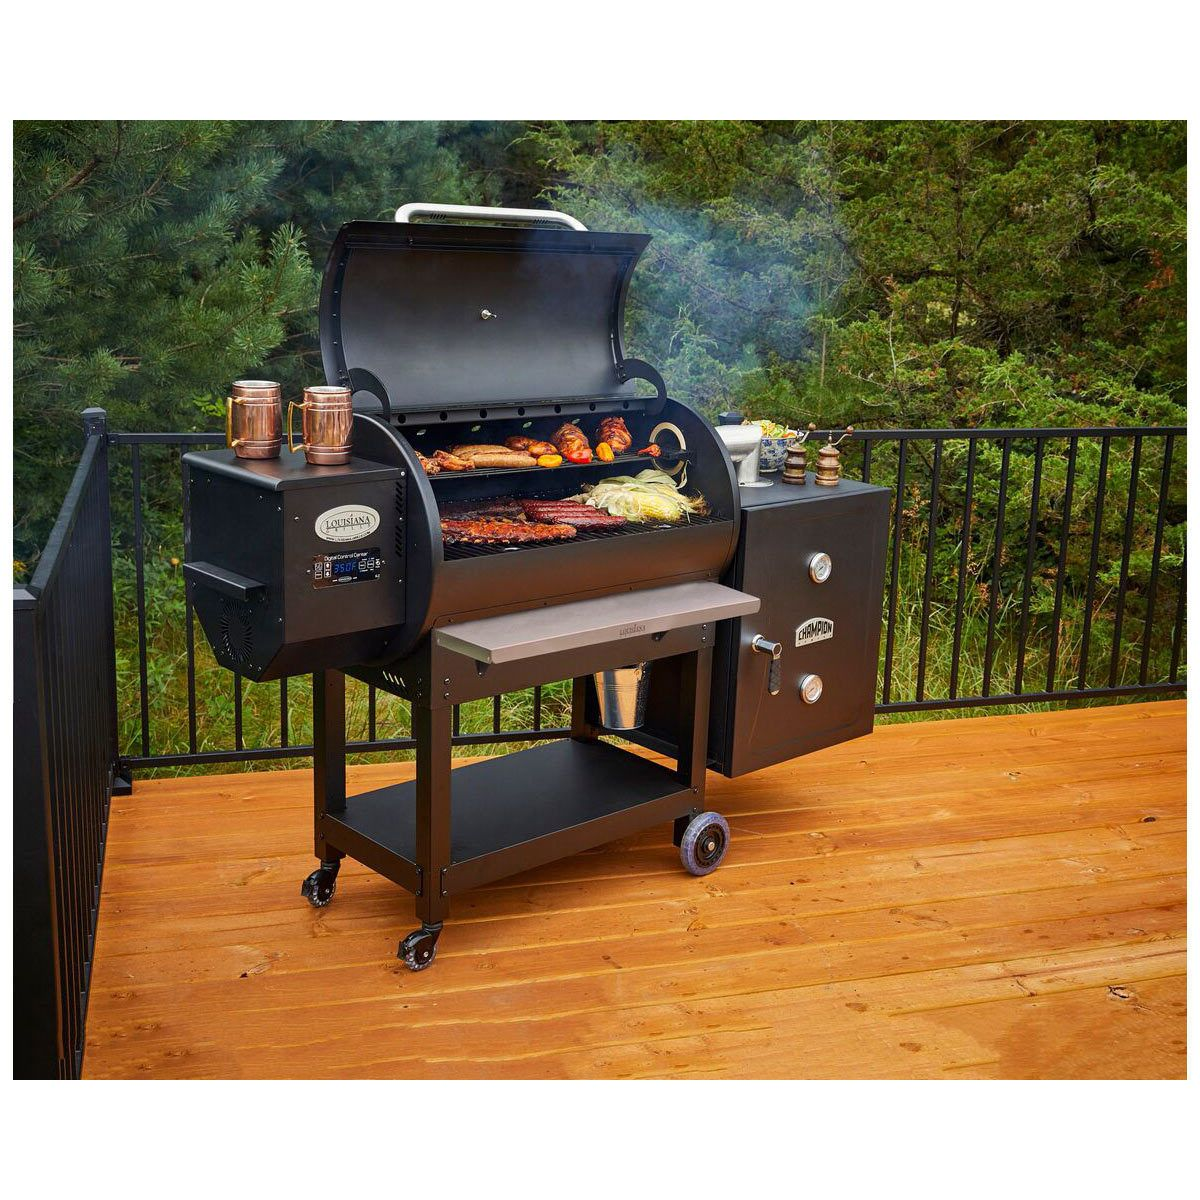 Louisiana Grills Series LG900 Grill + Cold Smoke Cabinet +